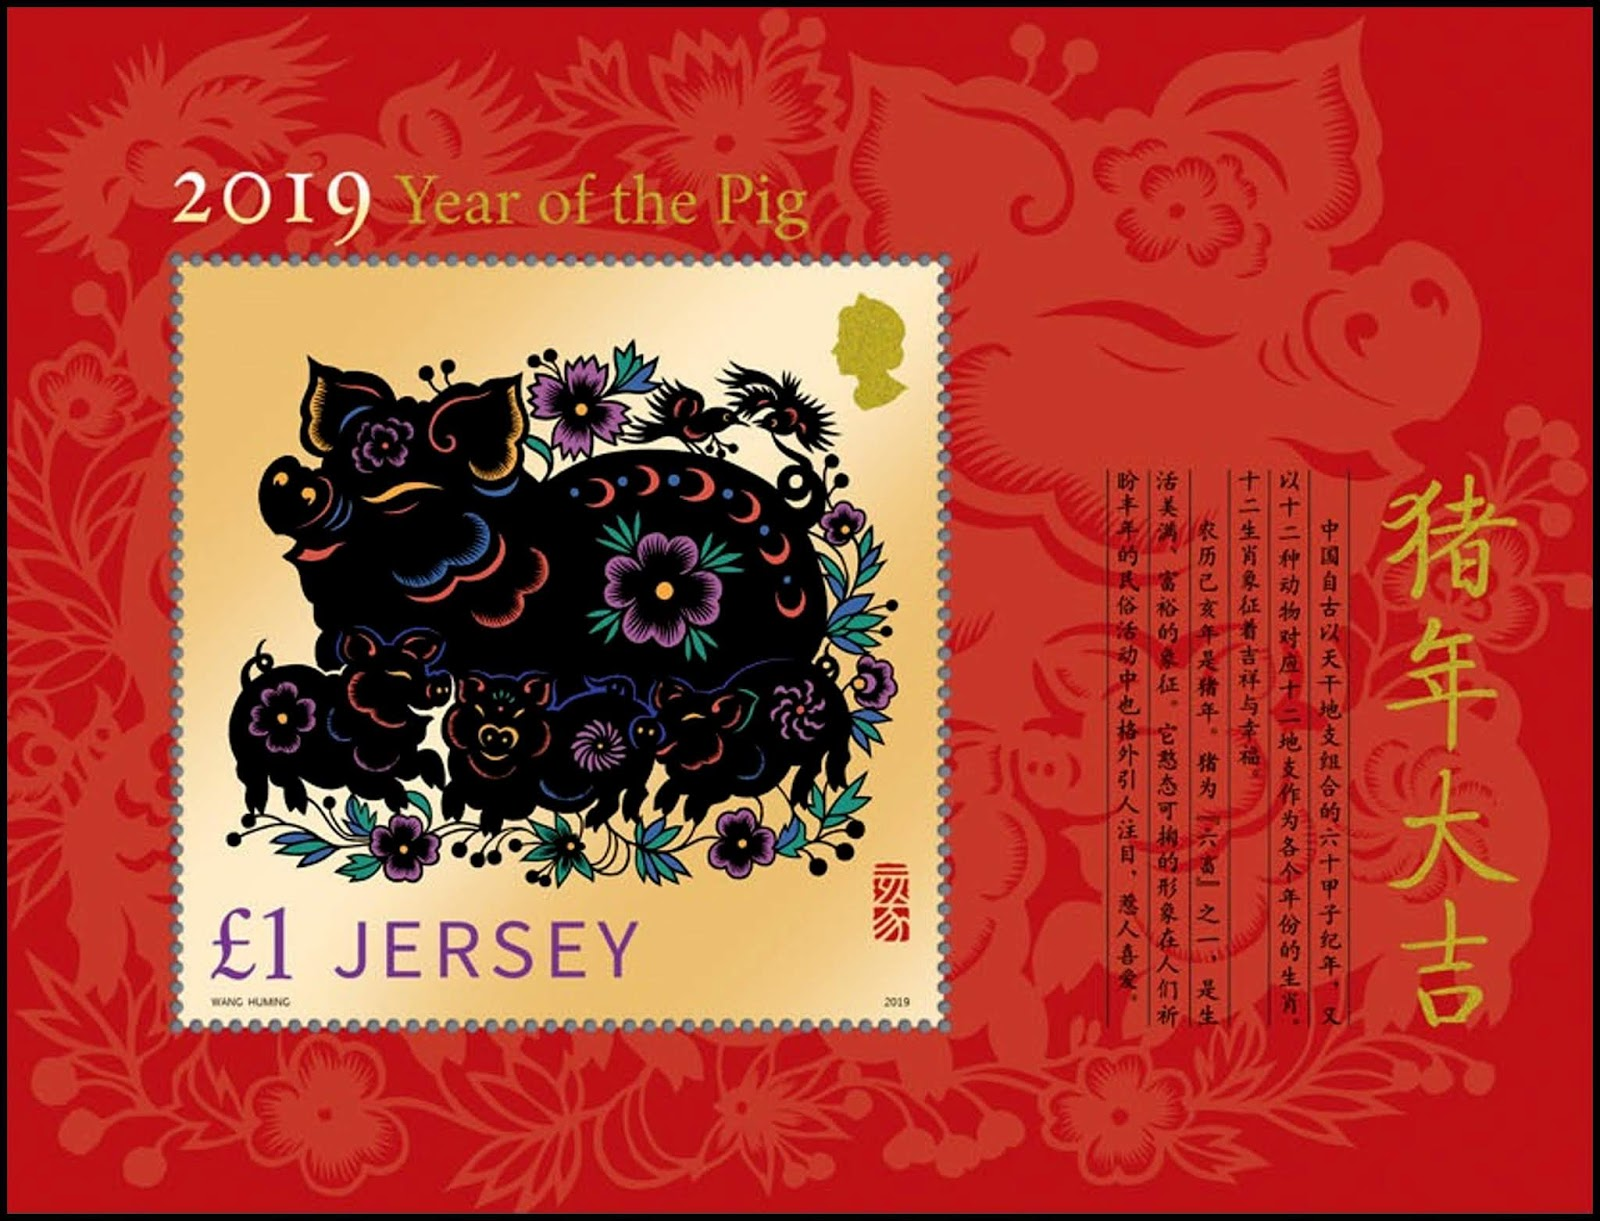 Jersey - Year of the Pig (January 4, 2019) souvenir sheet